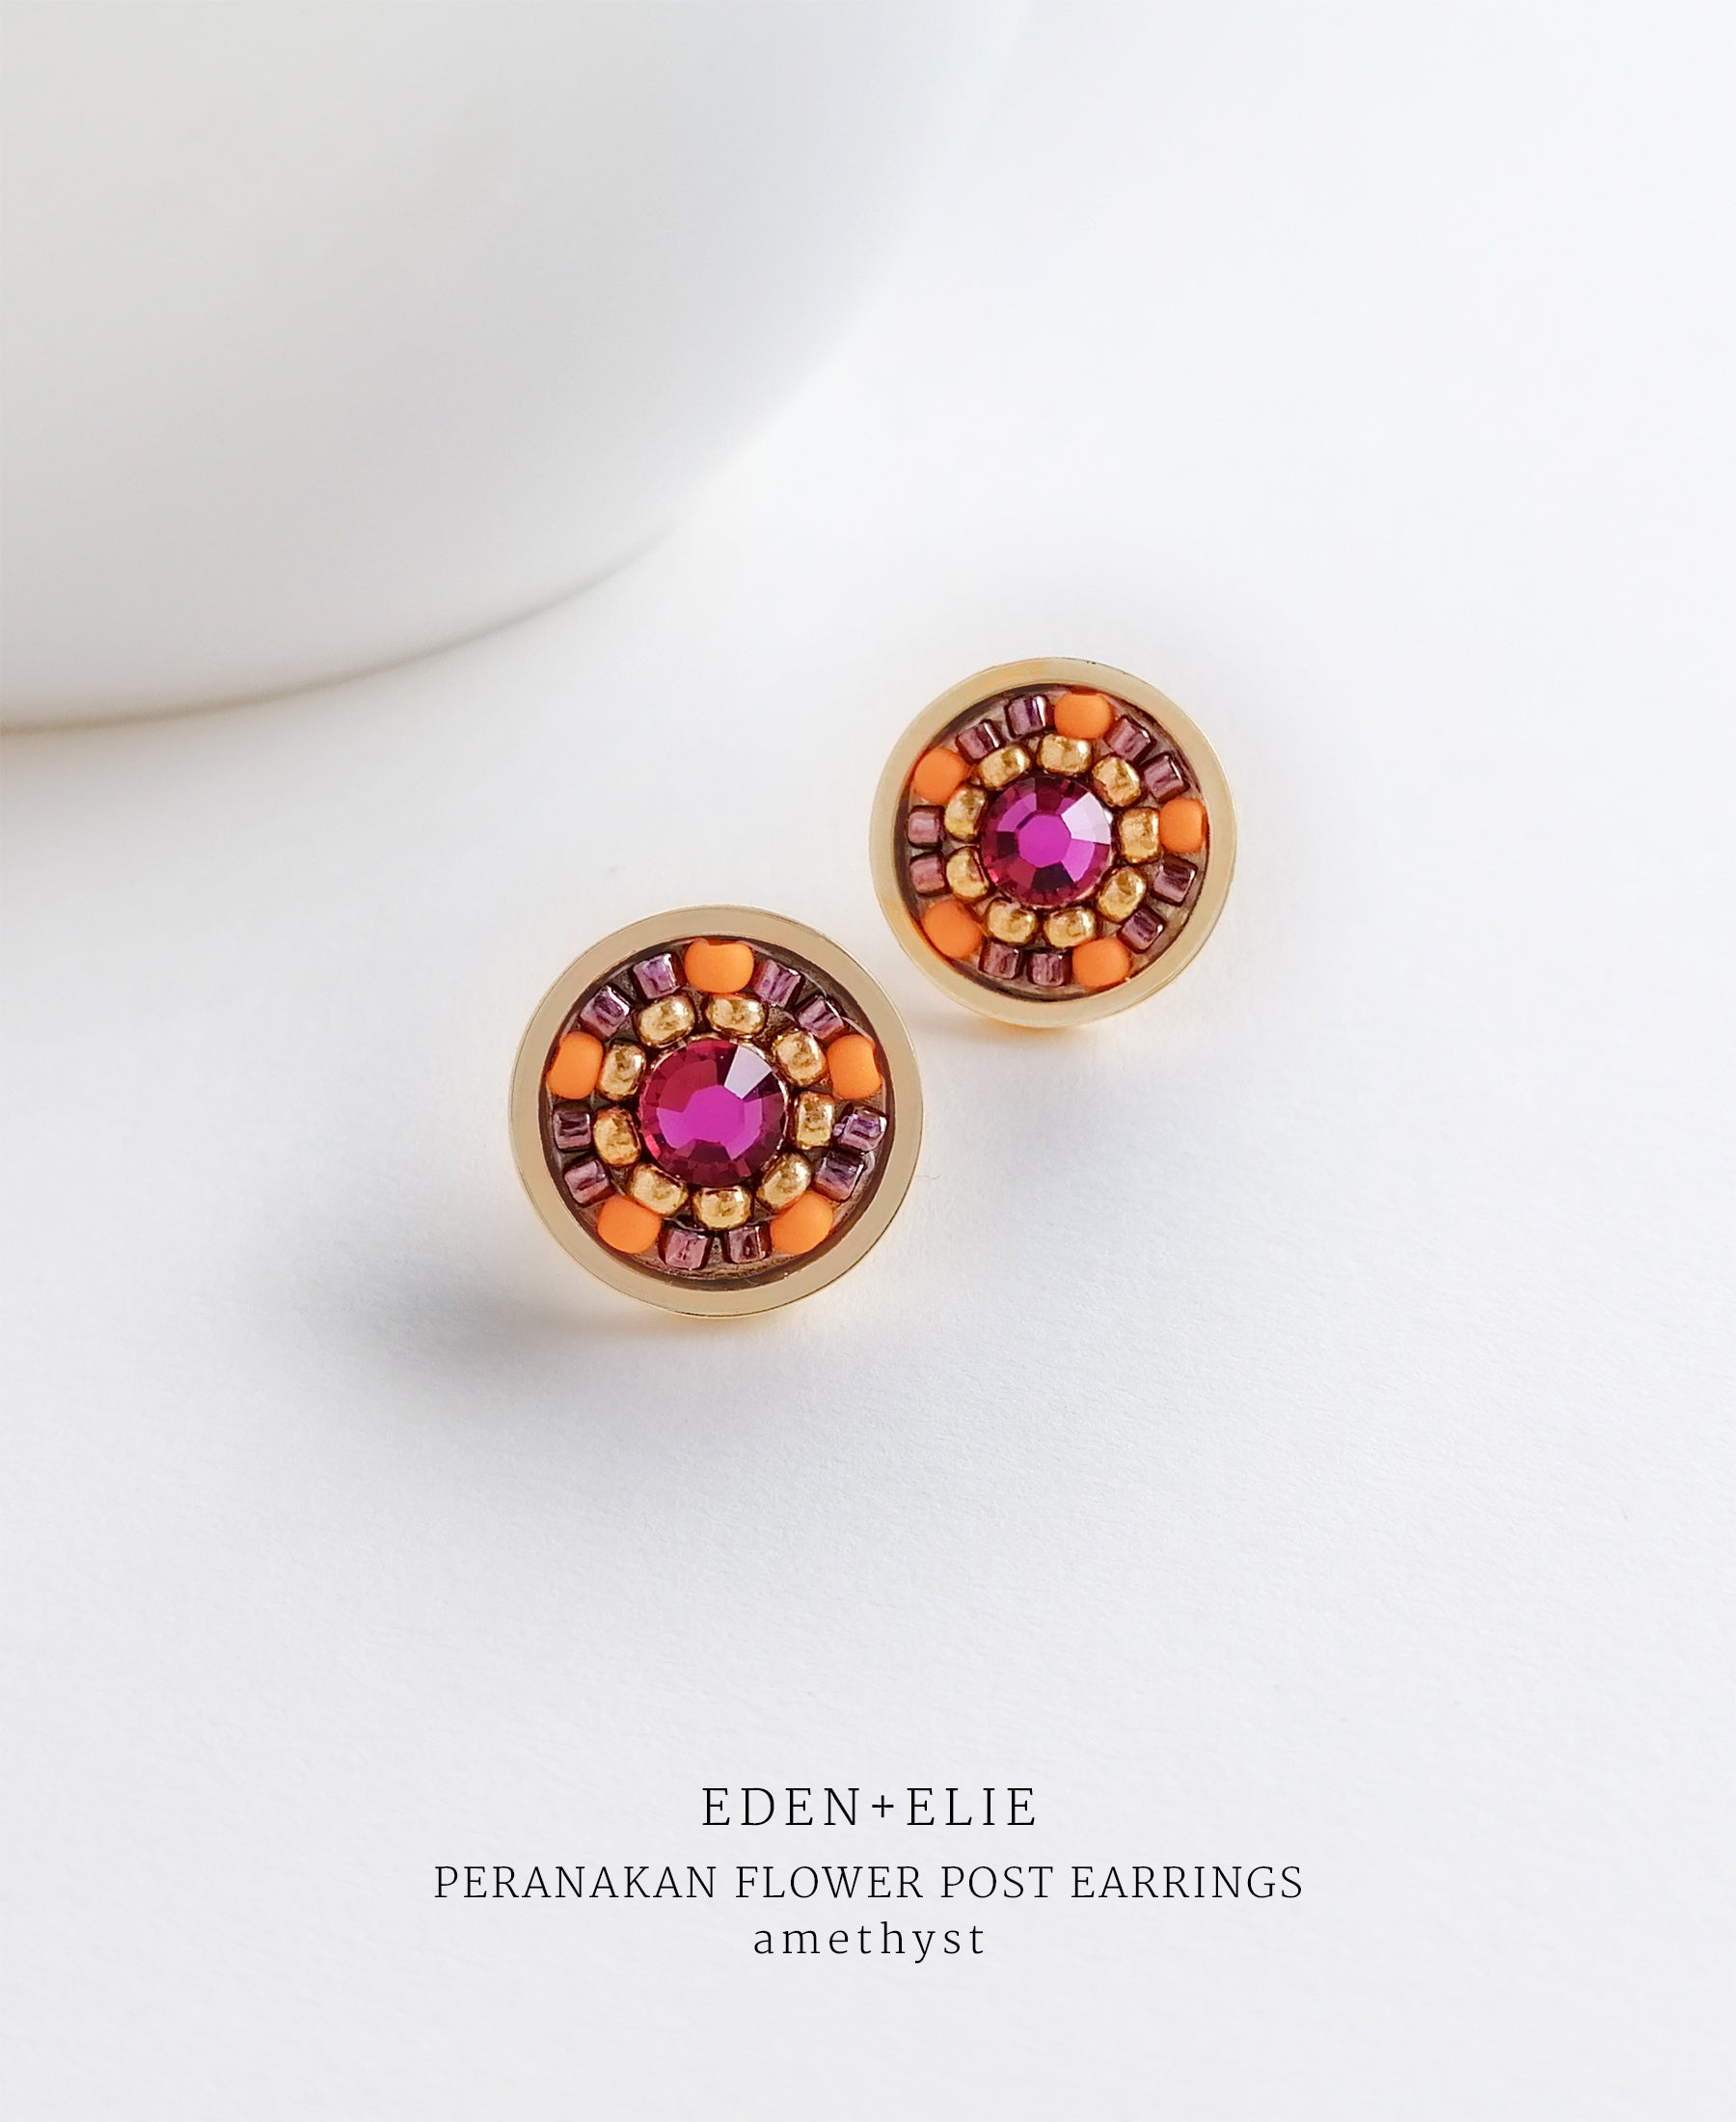 EDEN + ELIE Modern Peranakan flower stud earrings - amethyst